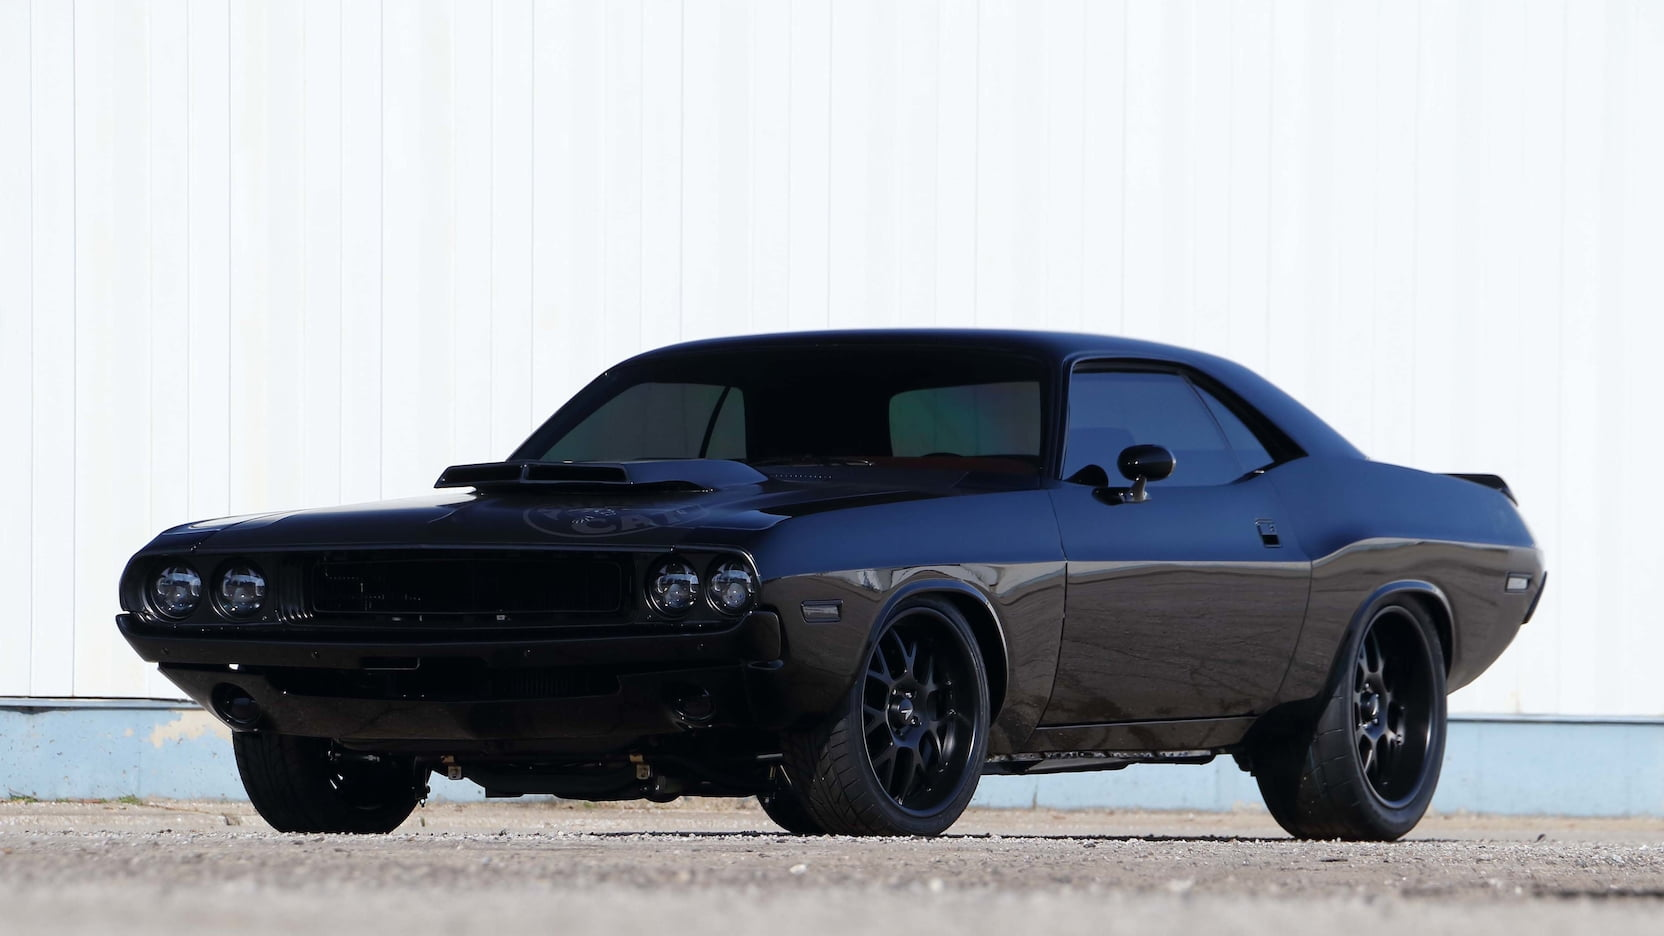 classic challenger looks meet hellcat engine in this amazing restomod. Black Bedroom Furniture Sets. Home Design Ideas